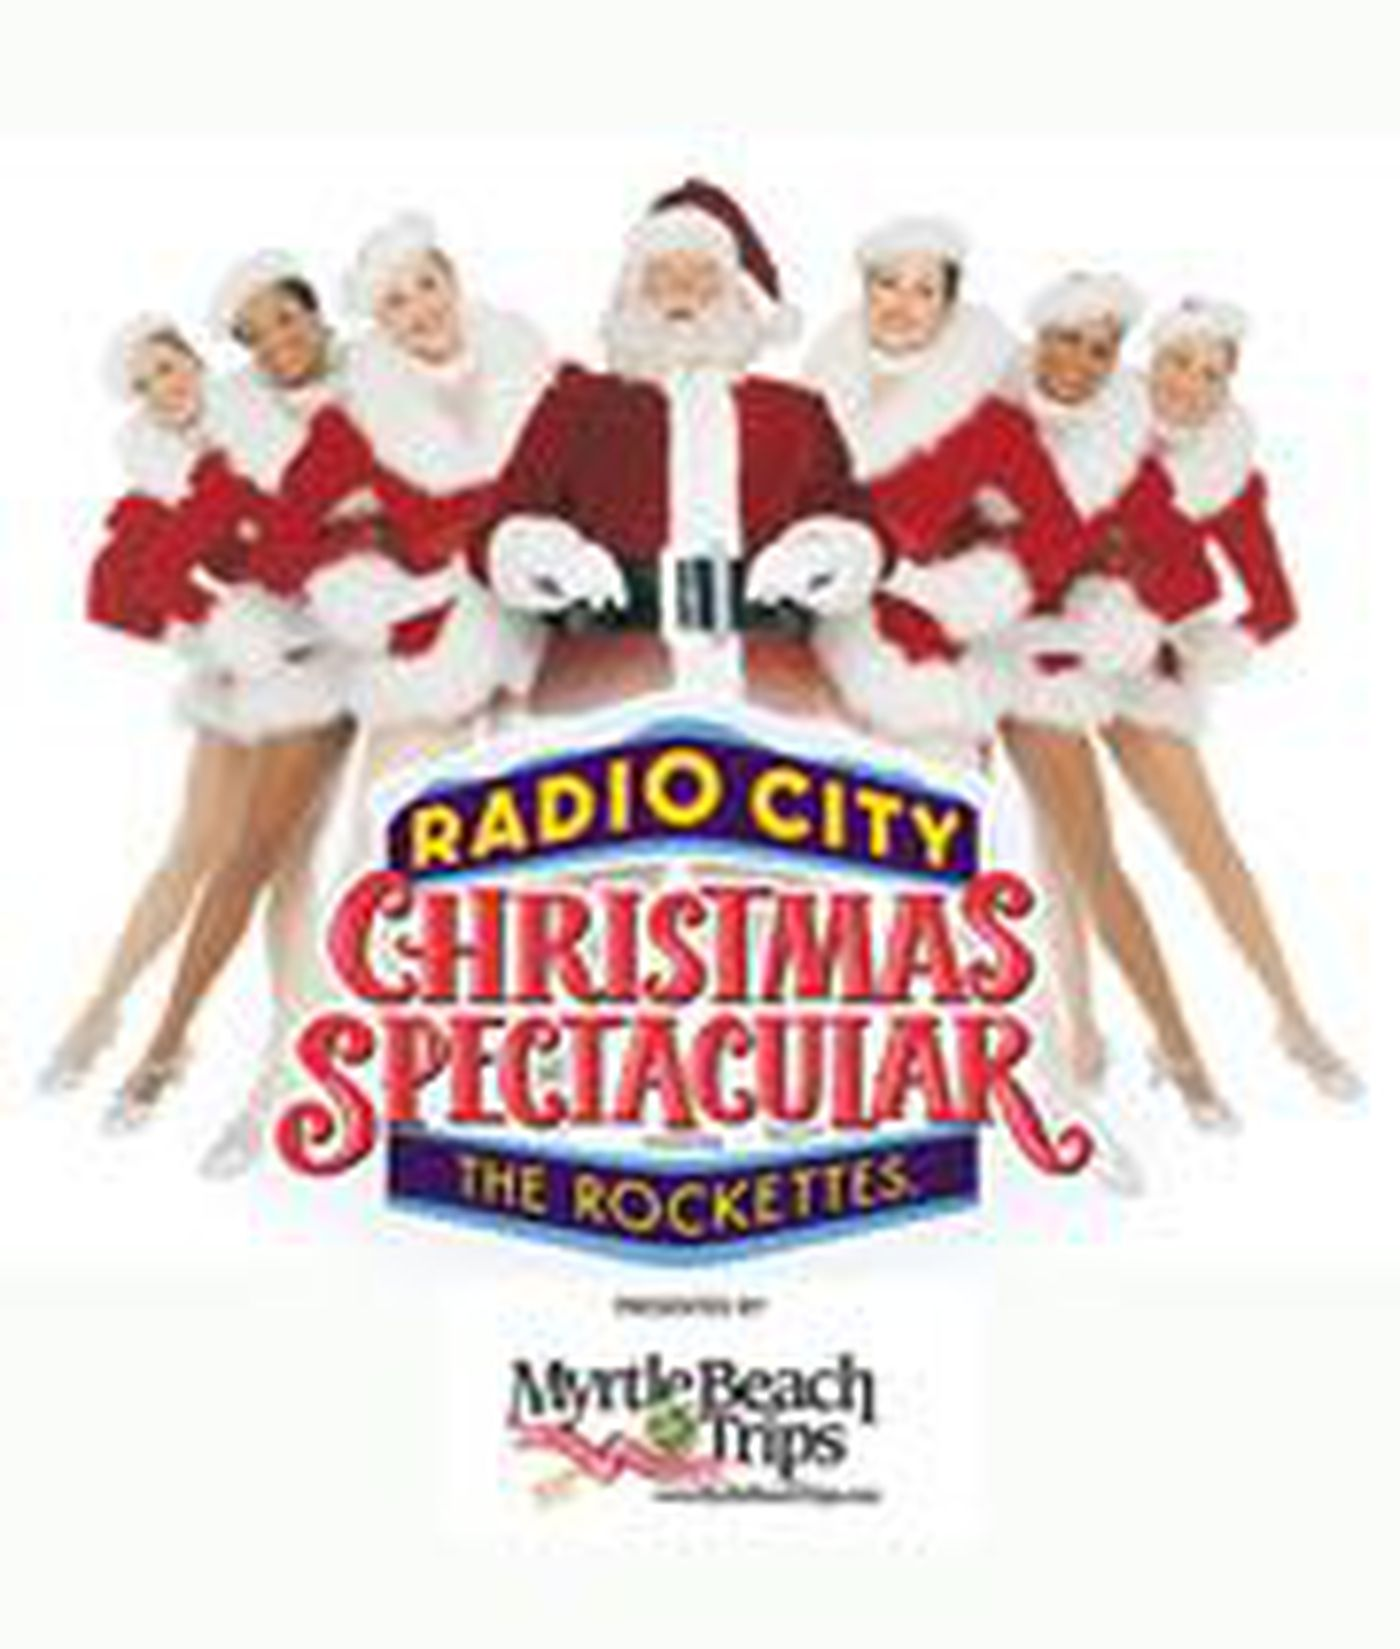 Contest Rules For The Radio City Christmas Spectacular Starring Rockettes Ticket